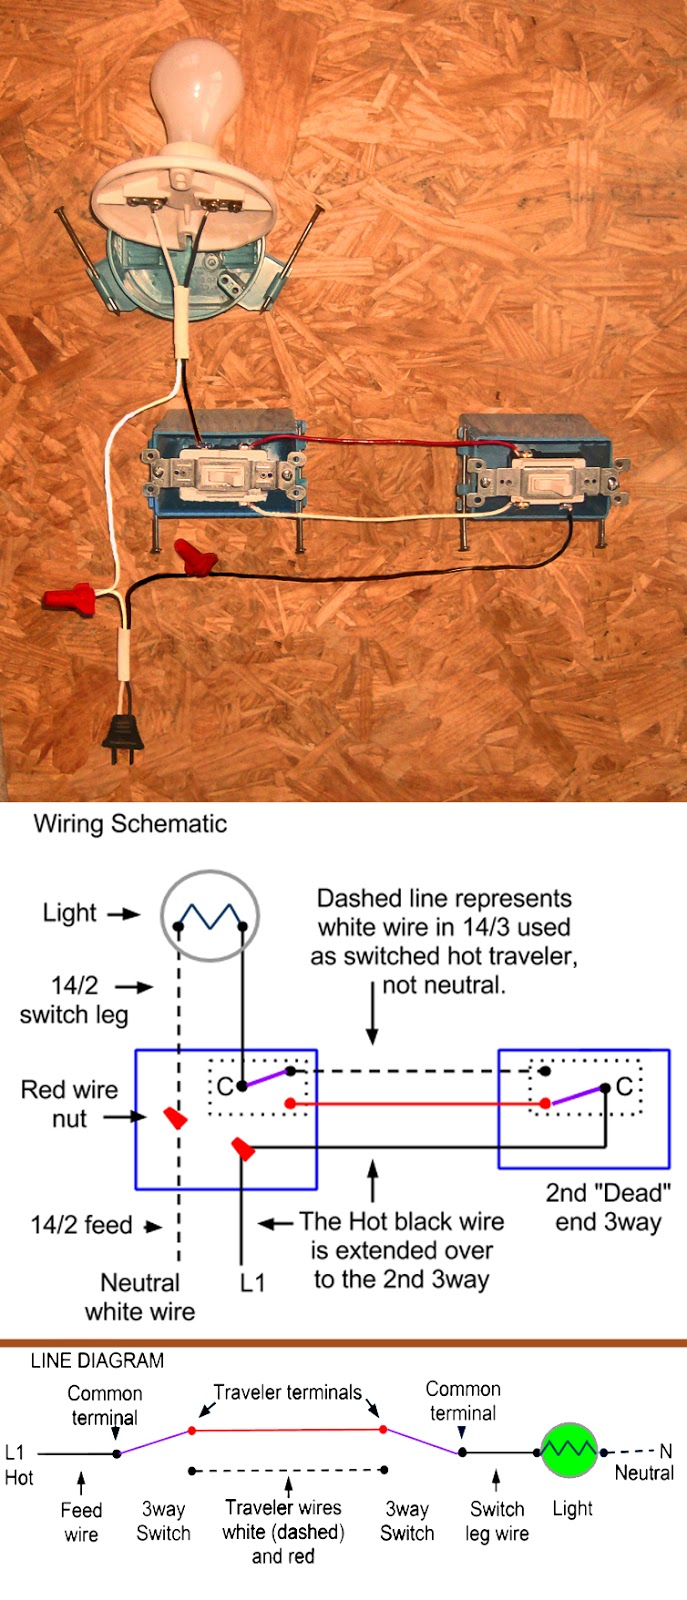 3 Way Switch Wiring Methods: Dead End and Radical S3